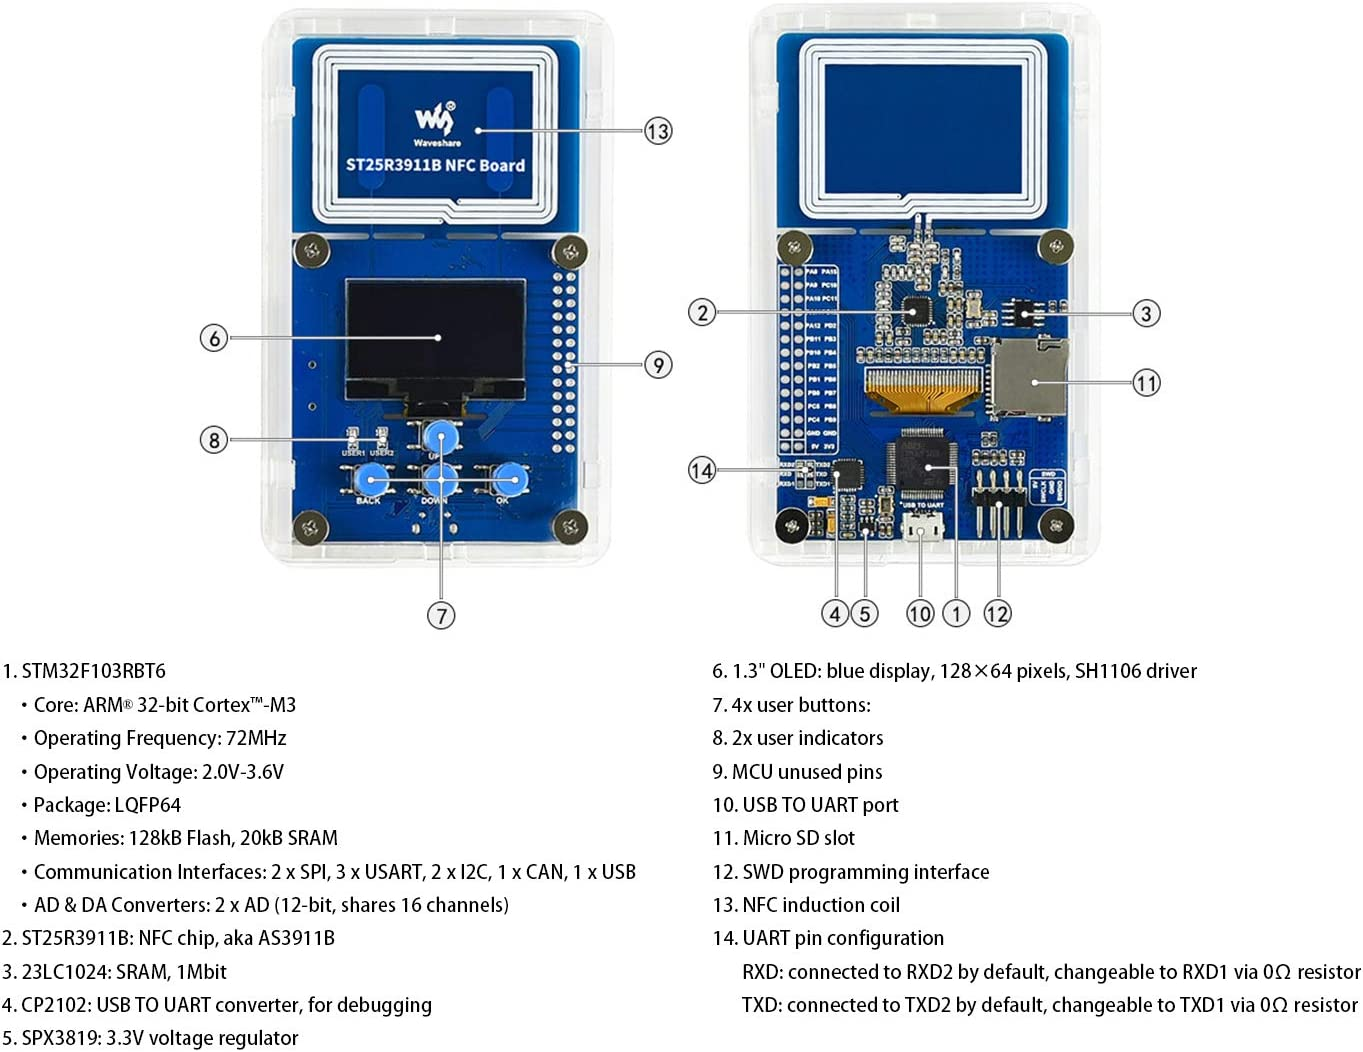 ST25R3911B NFC Development Kit NFC Reader,Onboard STM32F103 Controller//1.3 OLED Display//SRAM//Micro SD Slot//Programming UART Debugging Interface Support Multi NFC Protocols up to 1.4W Output Power